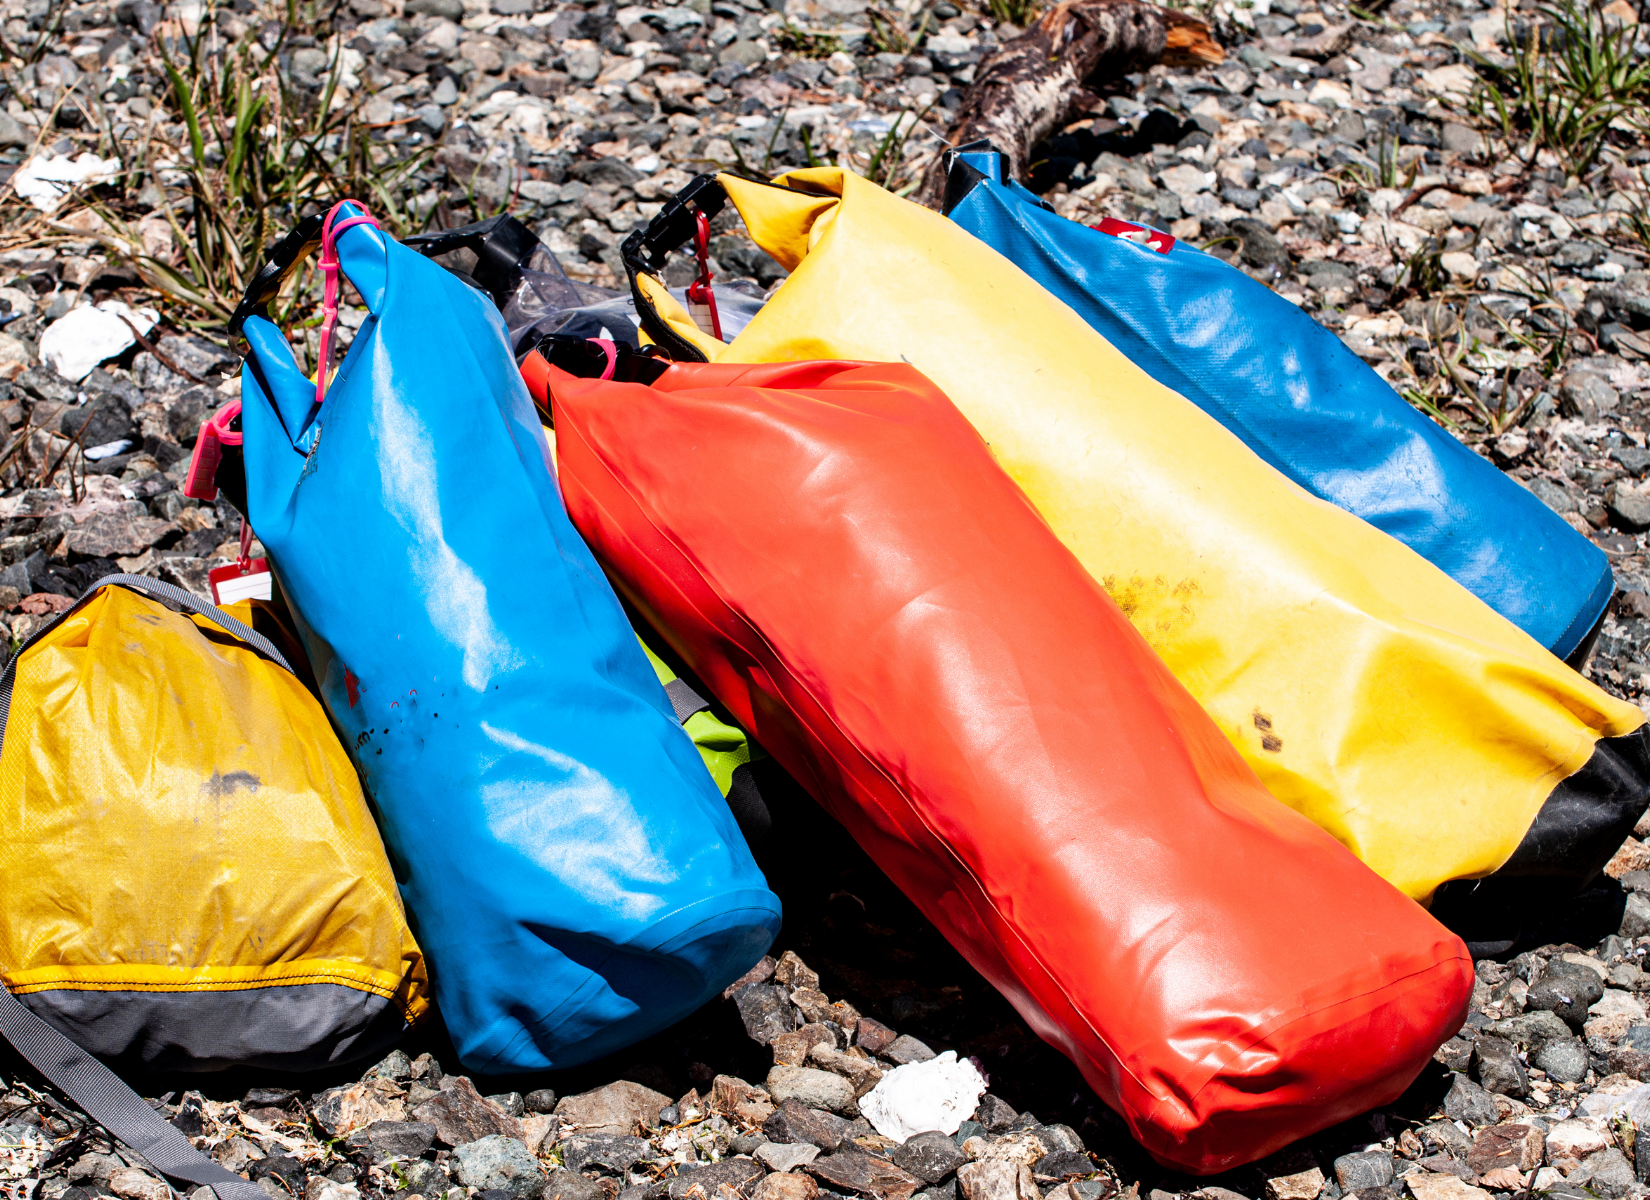 Best gifts for the boater - Dry bags